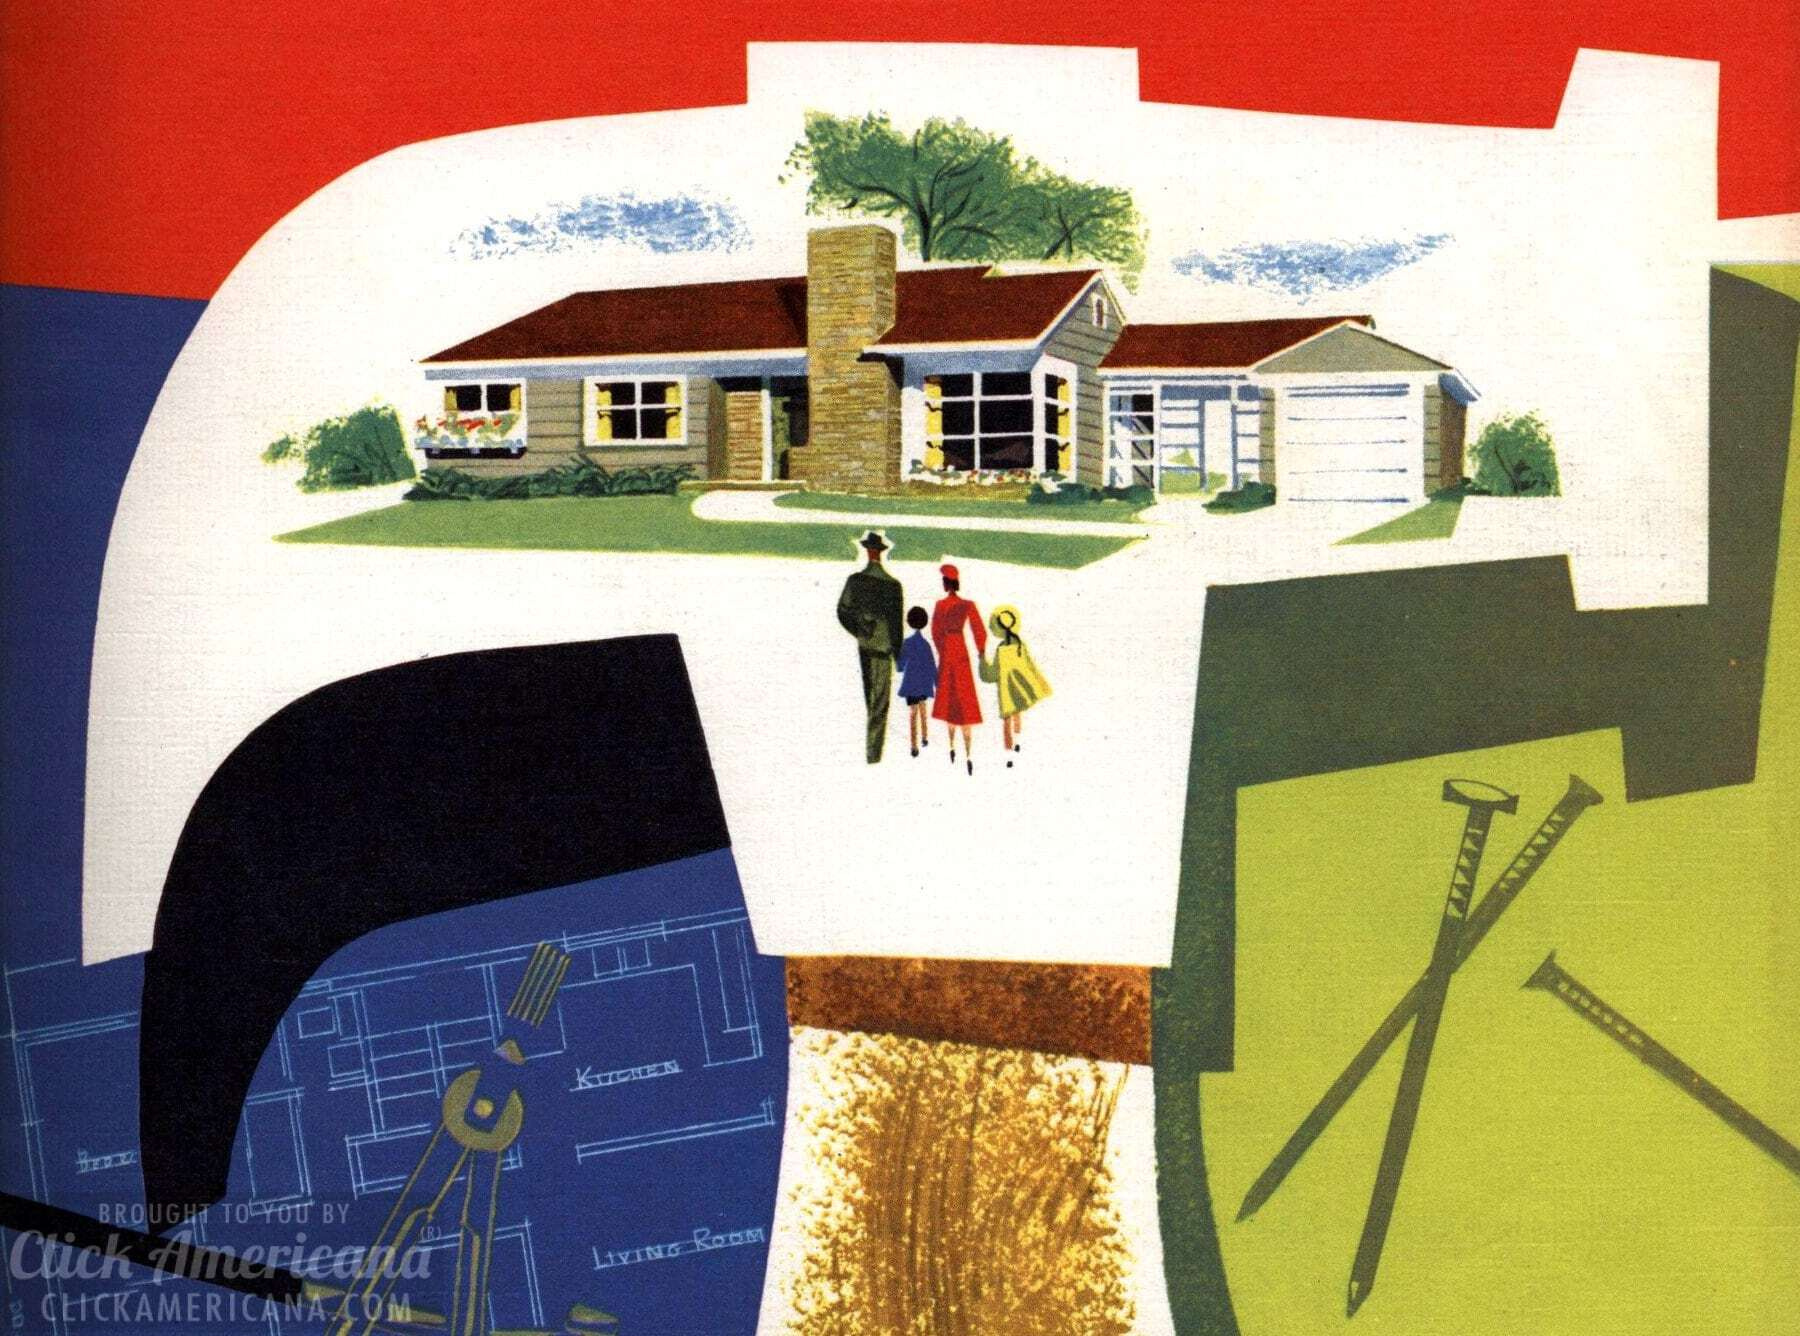 See 130 vintage '50s house plans used to build millions of ... House Plan Family America on new american home plans, america woodworking plans, america photography, america art, america flowers, america shopping, america dogs, american mansion plans, america painting, america small houses, america of america, america windows,